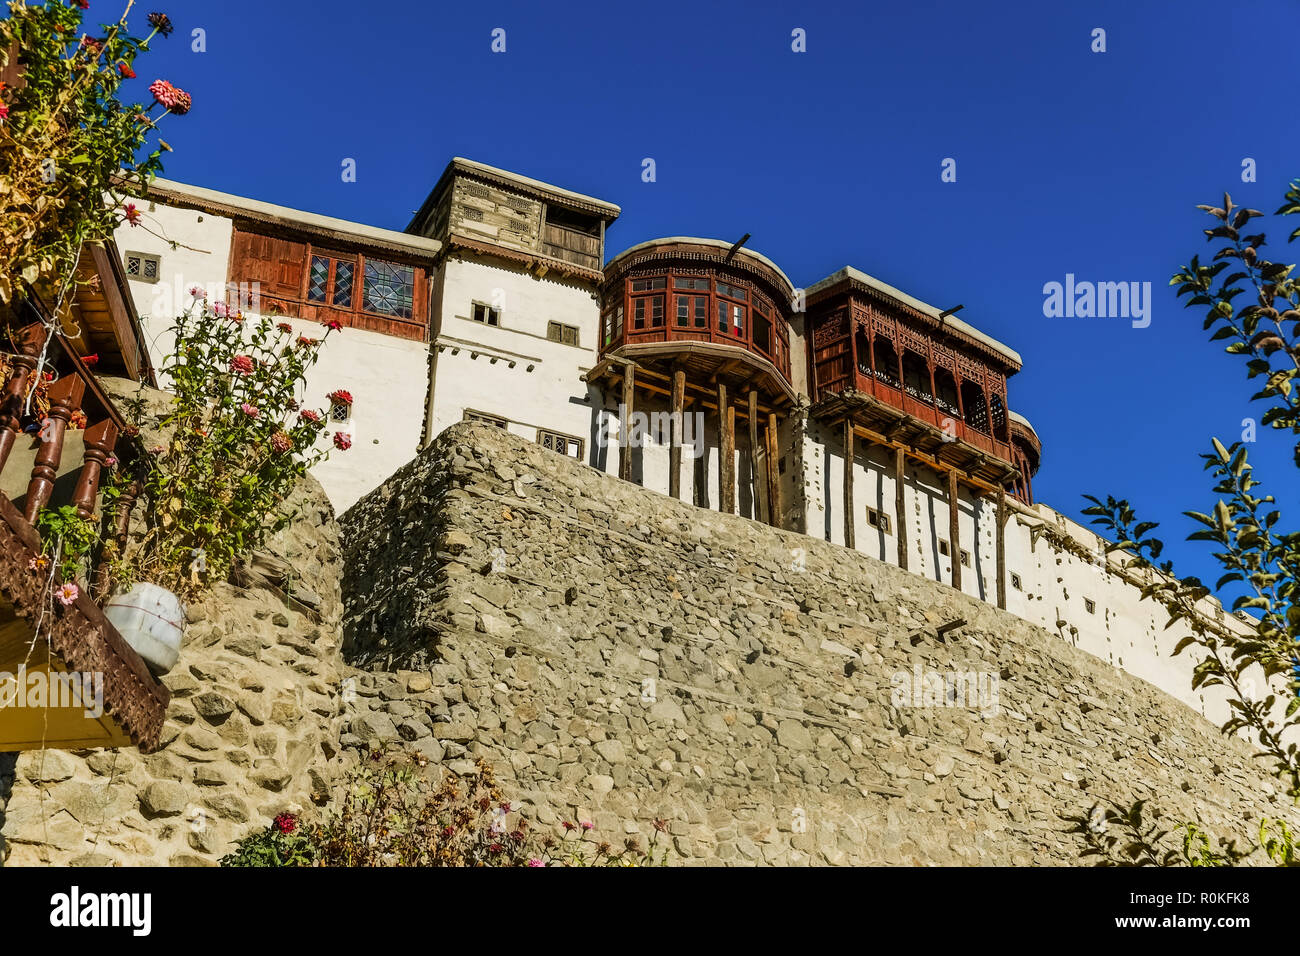 Baltit fort, the UNESCO World Heritage site. Karimabad, Hunza valley. Gilgit Baltistan, Pakistan. - Stock Image